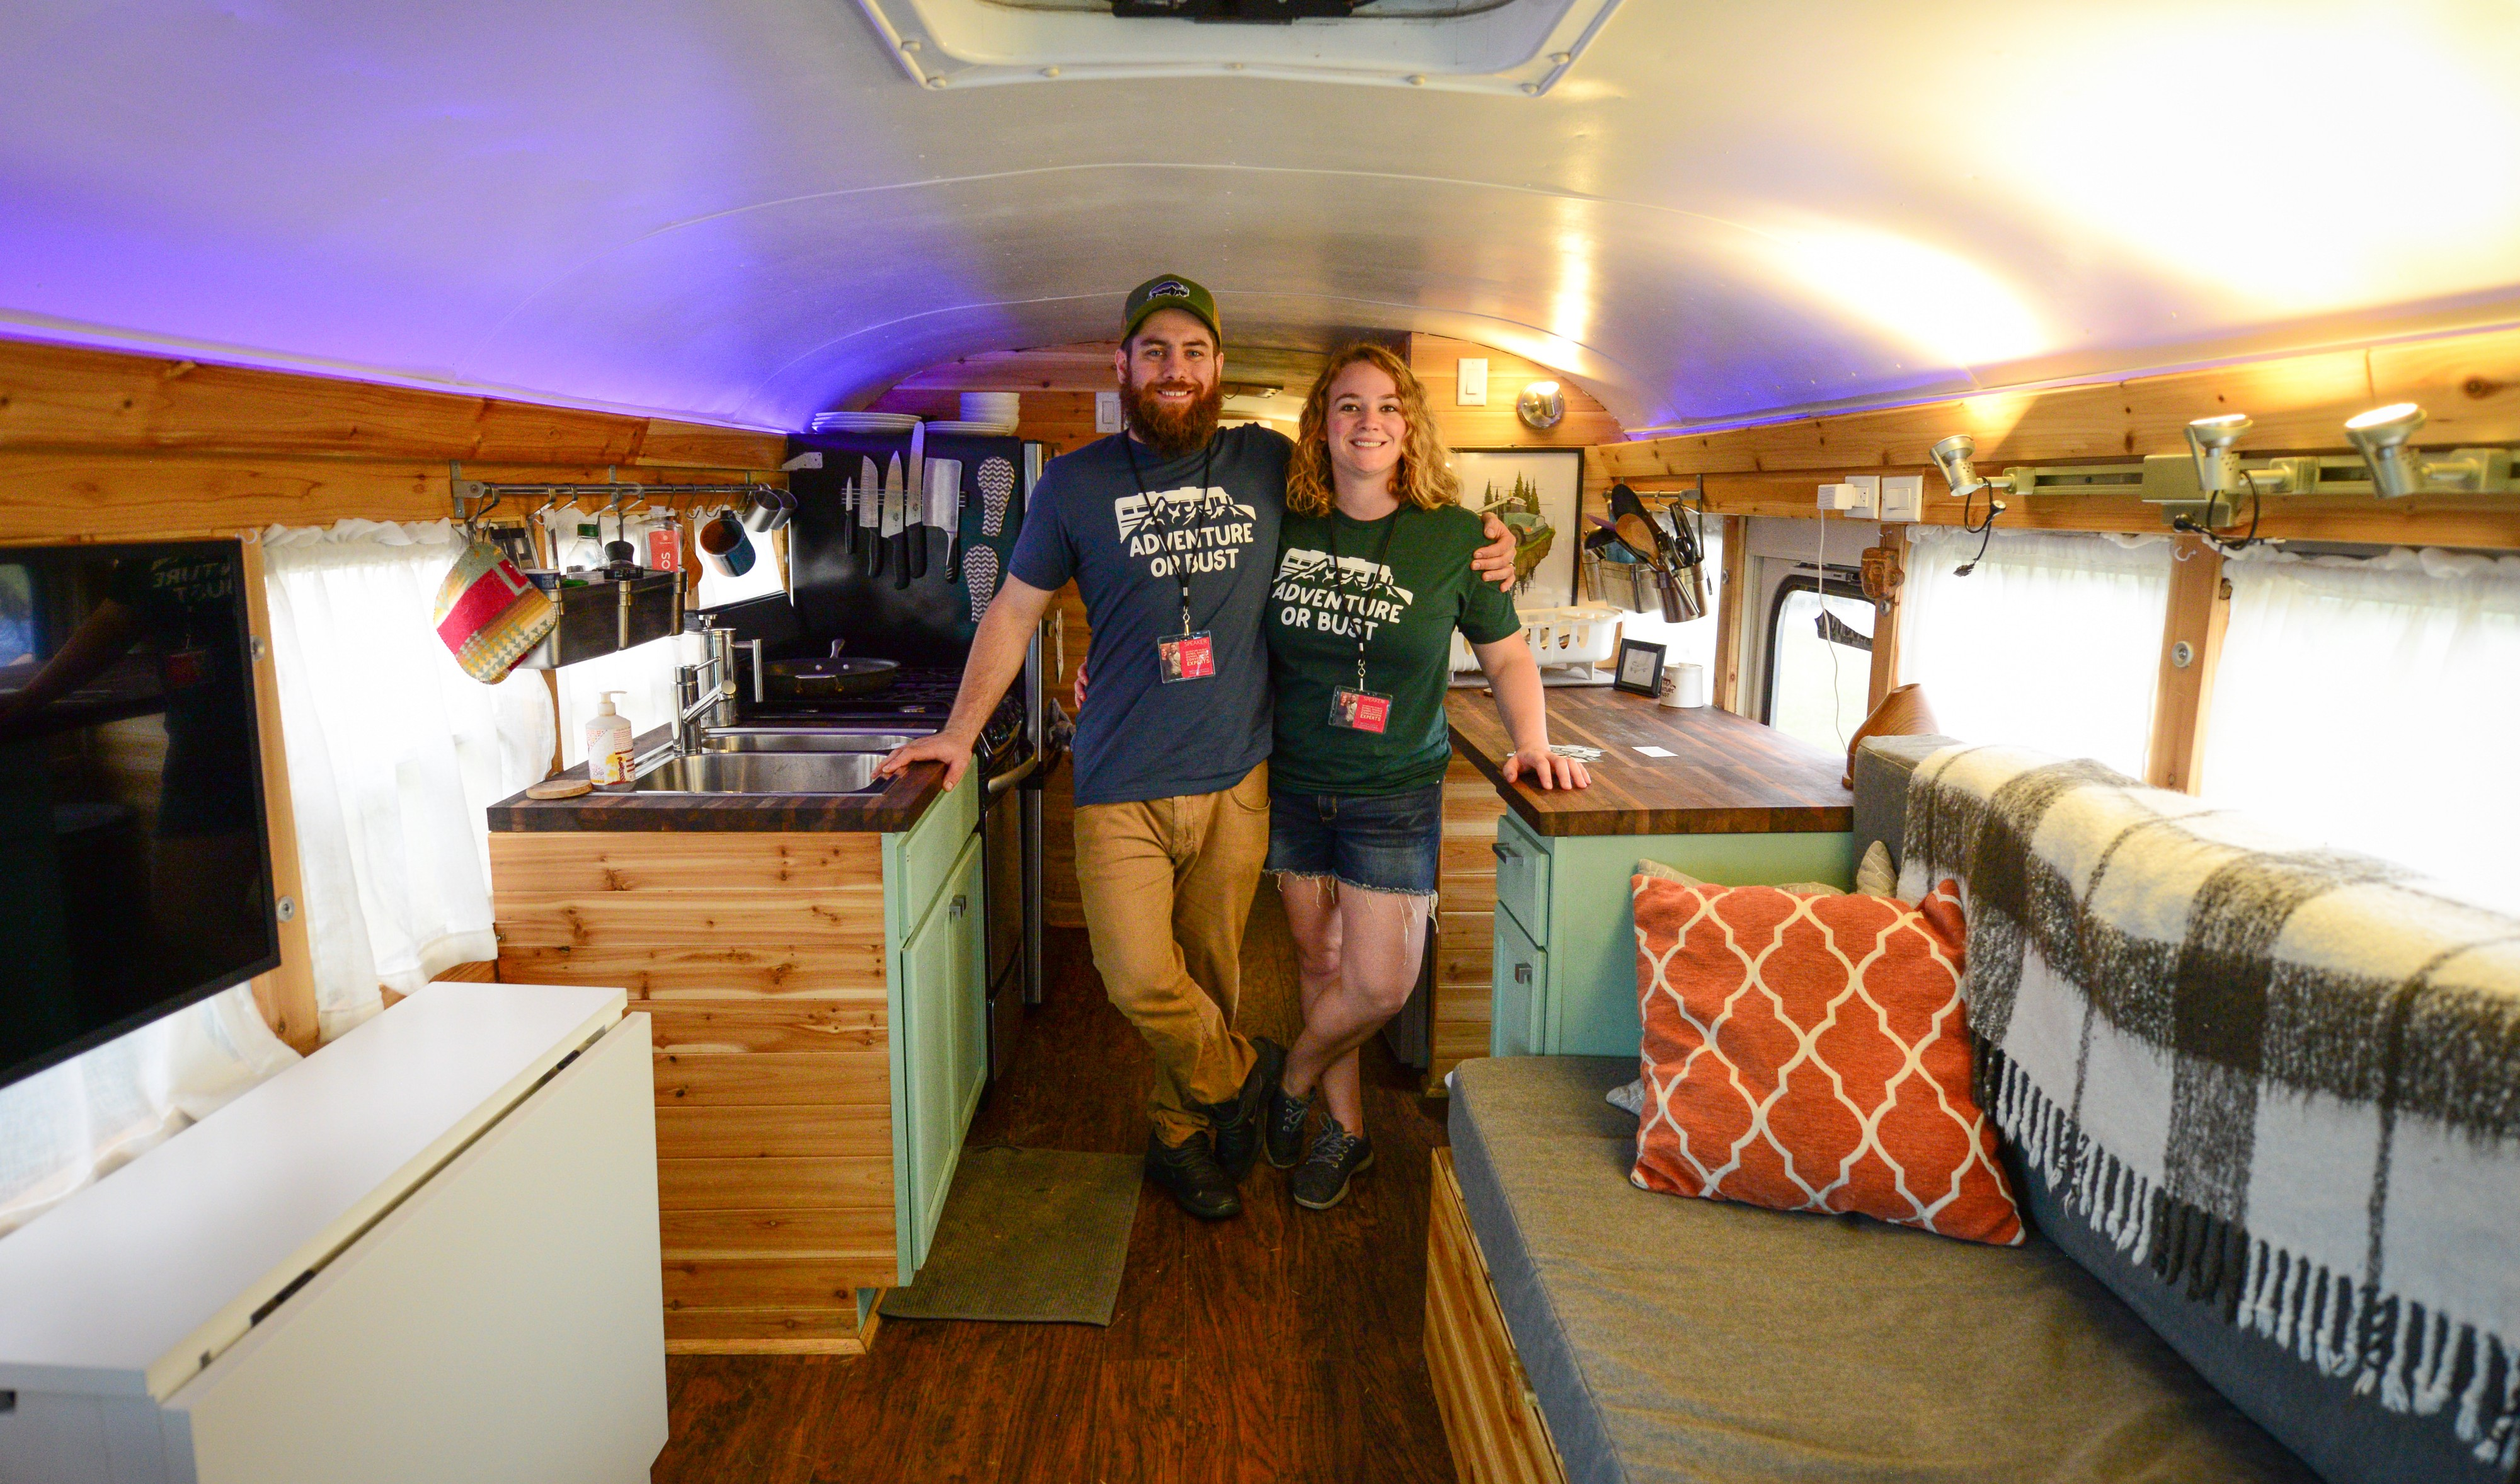 How converting a school bus into a home made me a better